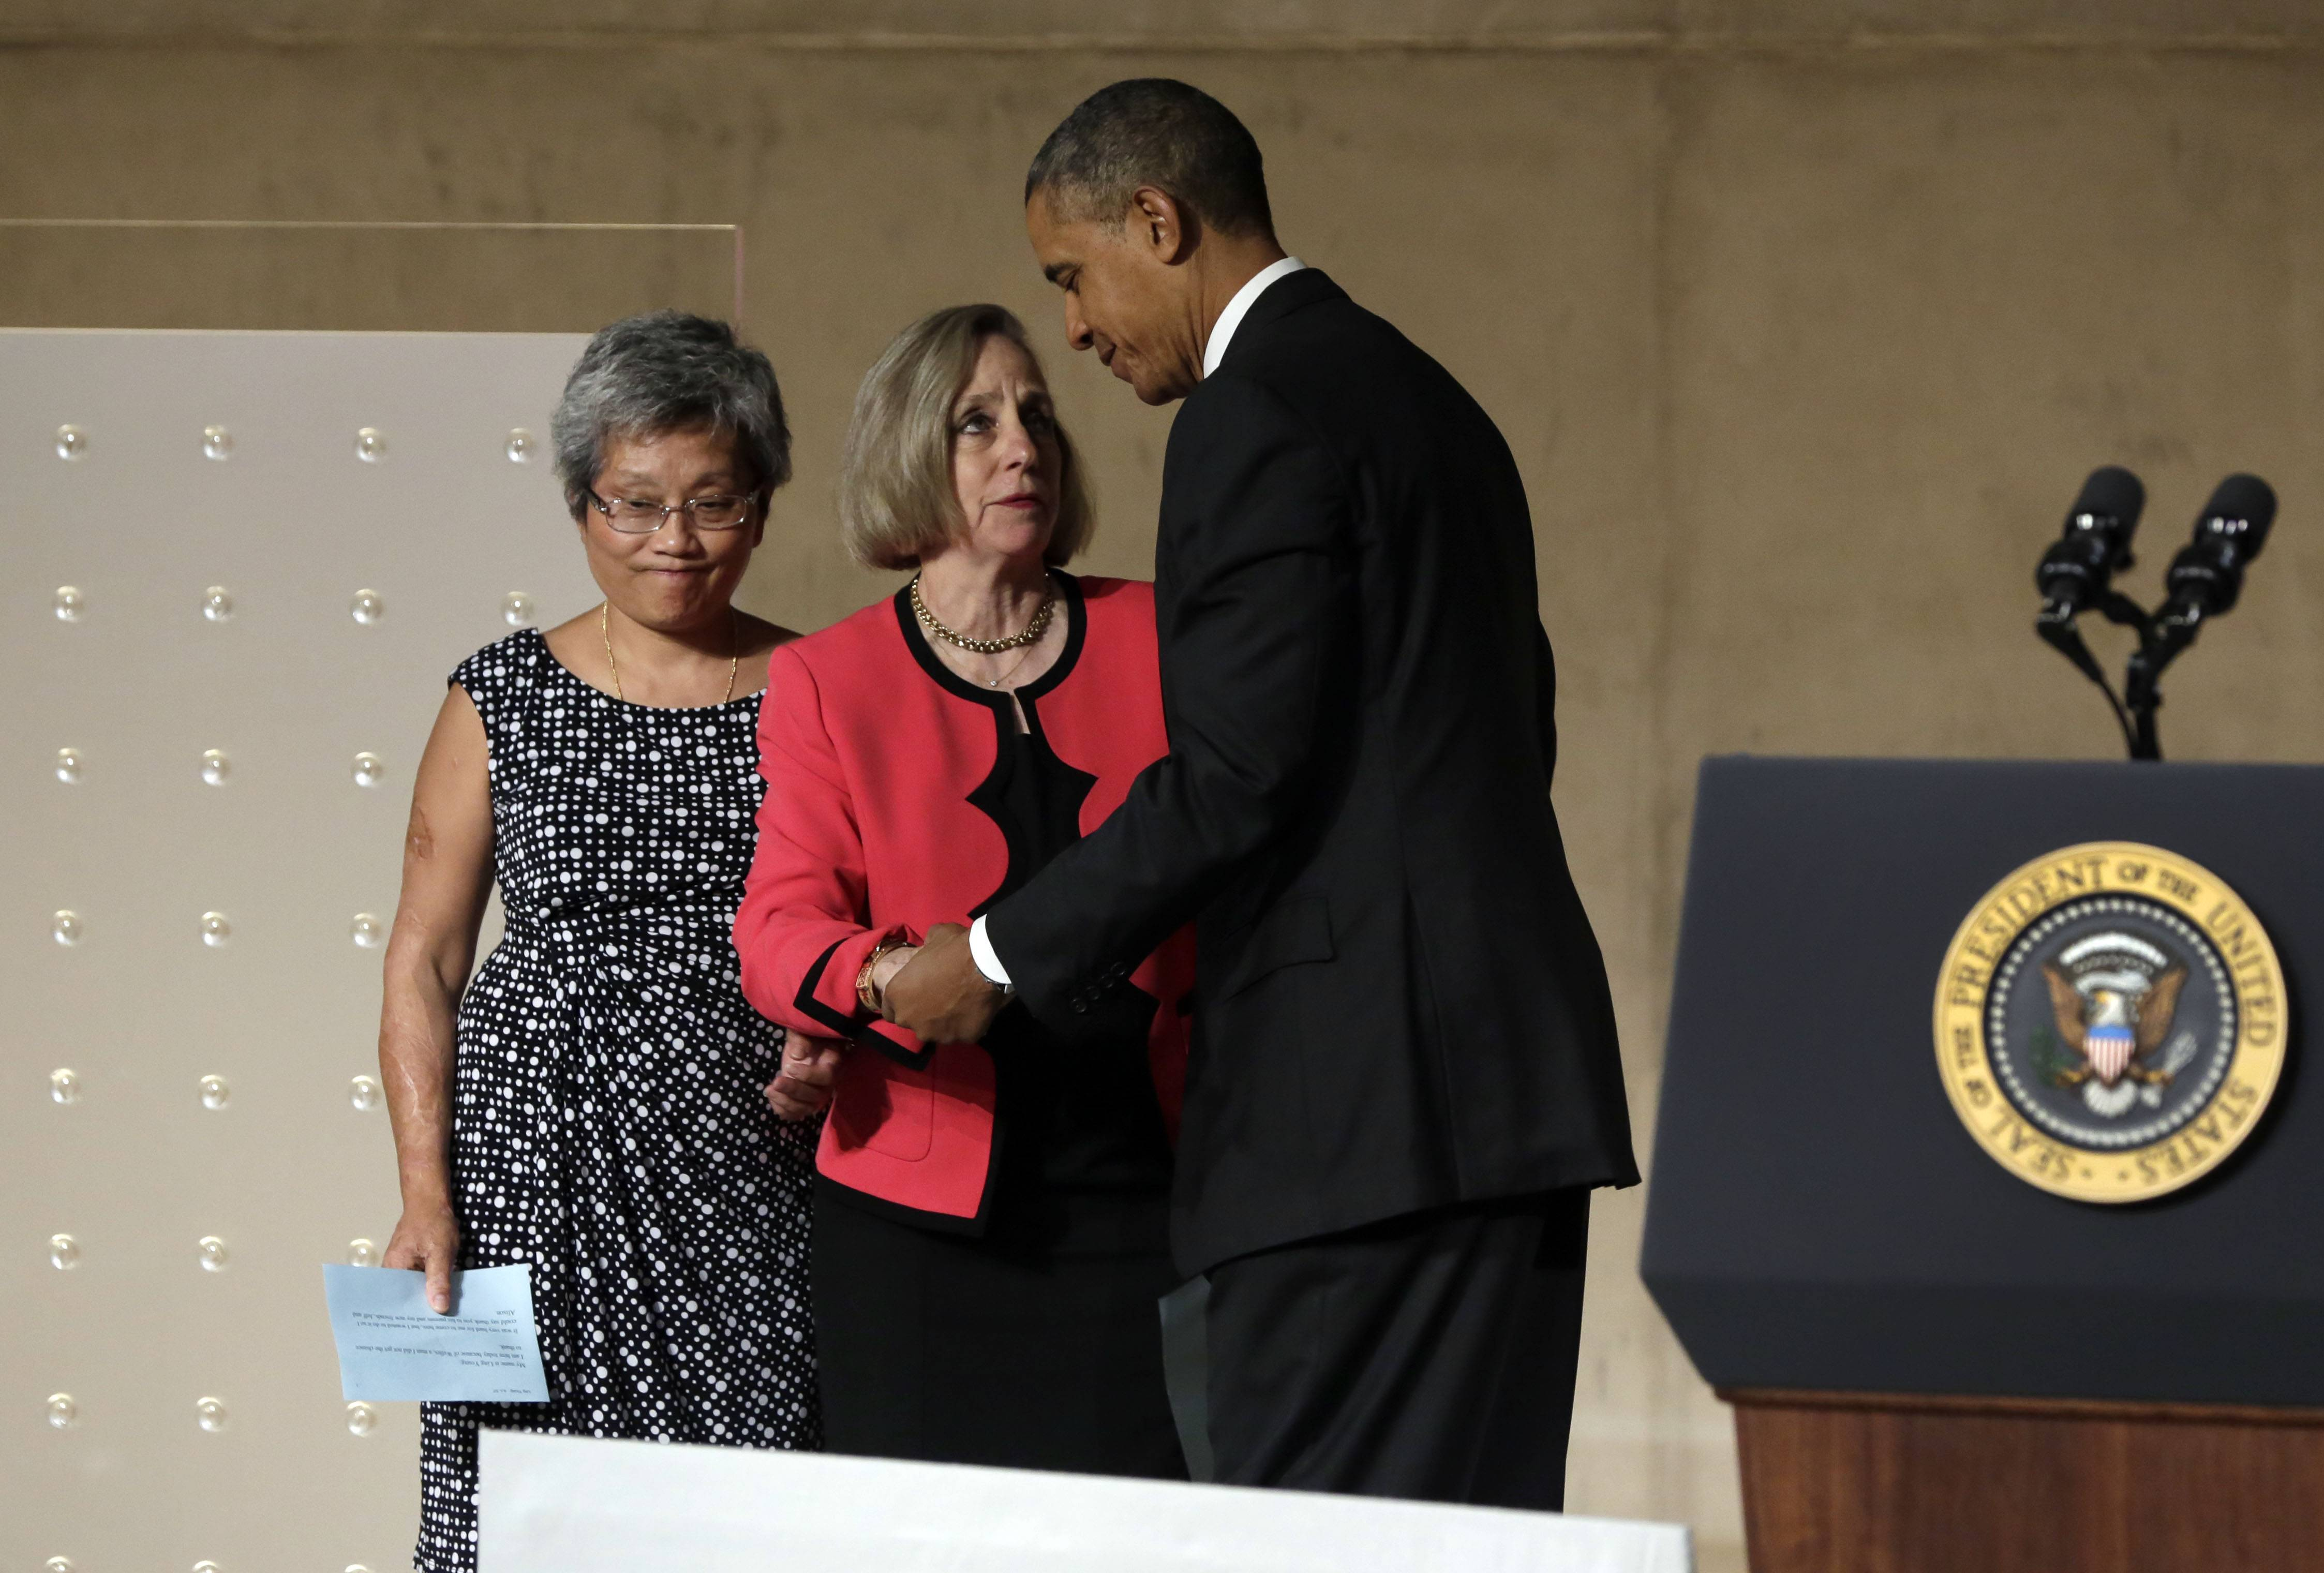 President Barack Obama talks with Ling Young, left, and Alison Crowther before their remarks during the dedication ceremony in Foundation Hall. Young was working on the 86th floor of the South Tower and was one of 12 people who escaped the sky lobby after Flight 175 struck the World Trade Center. Crowther is the mother of Welles Crowther who was killed on September 11 while assisting in the evacuation efforts in the South Tower.